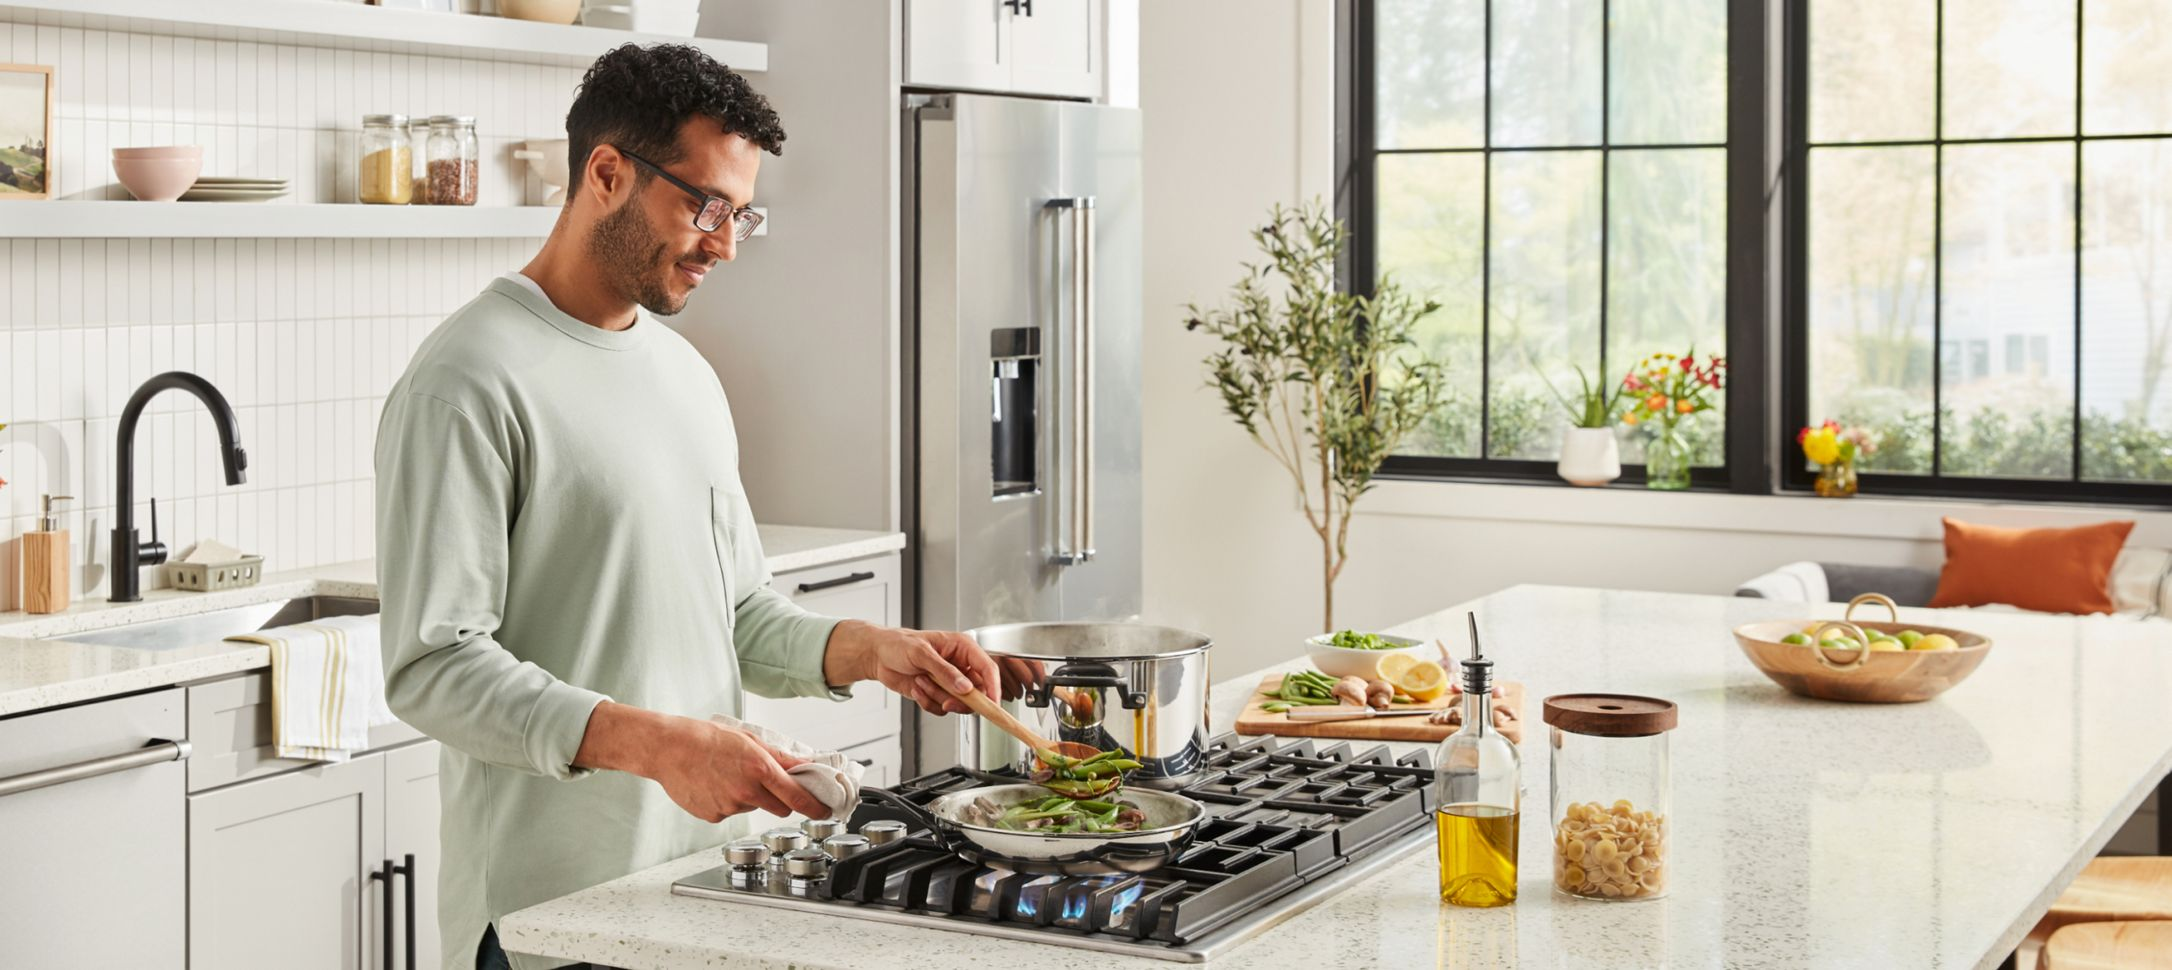 A person cooking over a cooktop in a bright, clean kitchen.